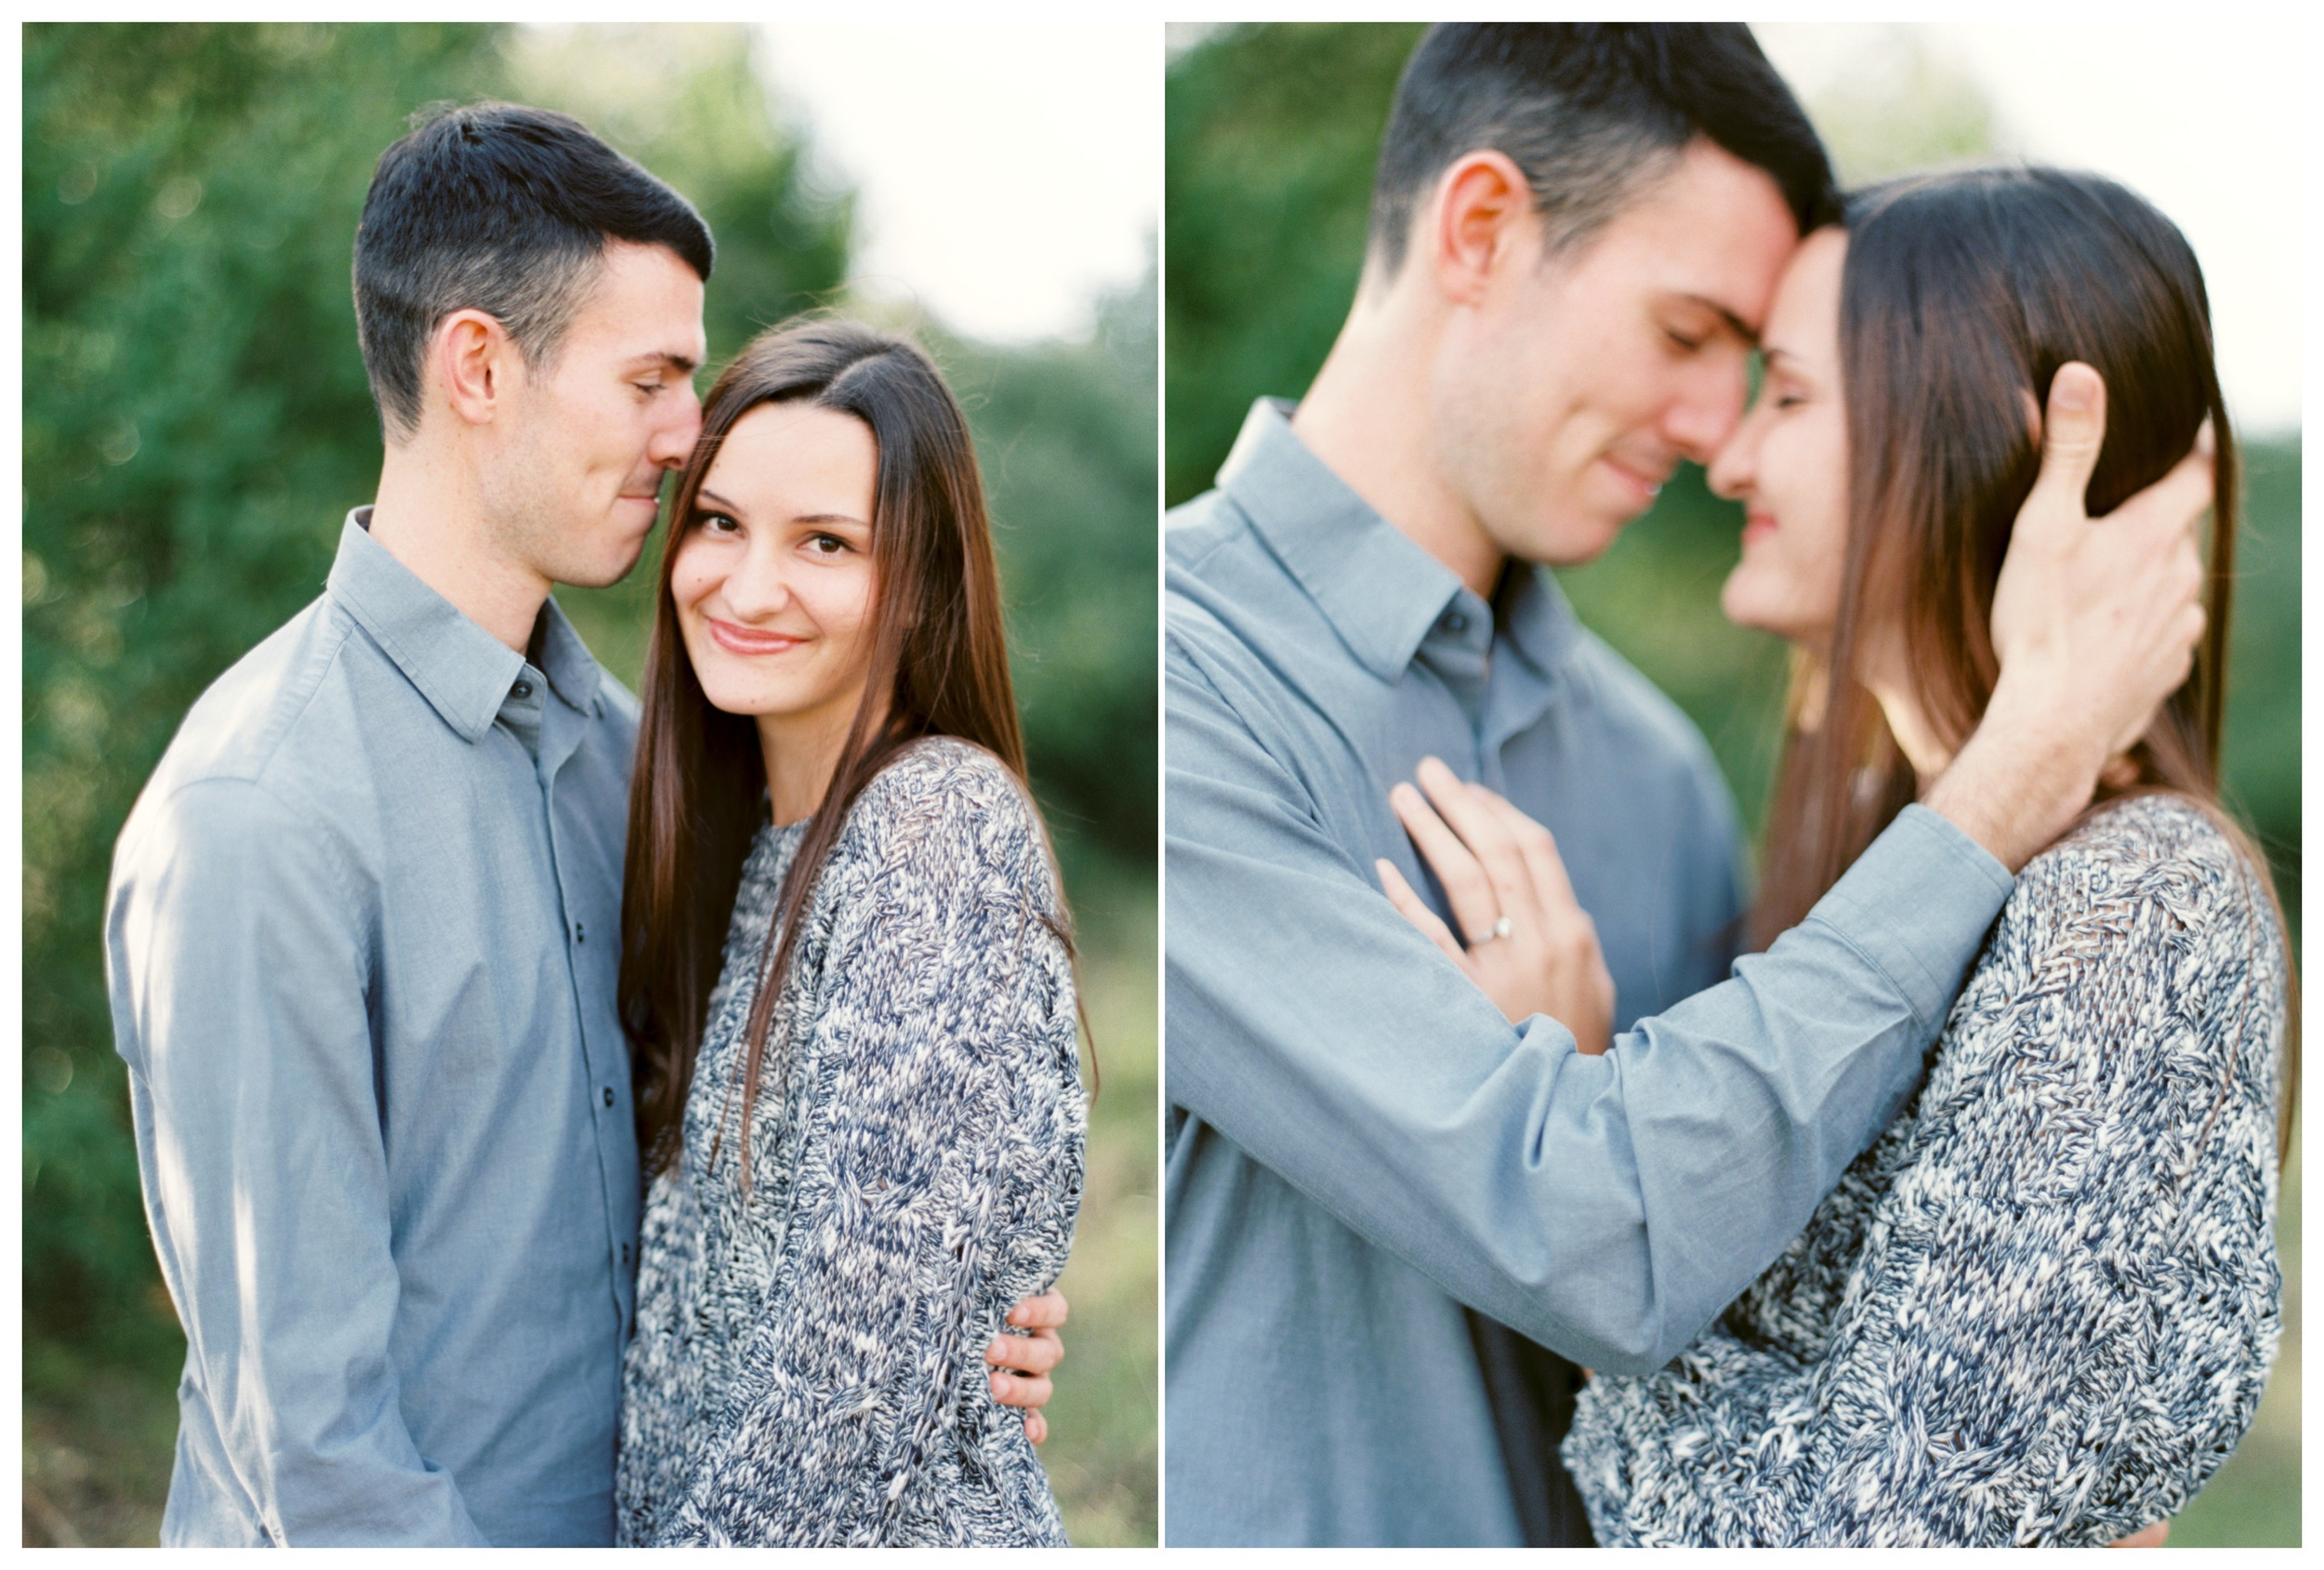 Sarah Best Photography - Brittany & Jonathan's Engagements-188_STP.jpg